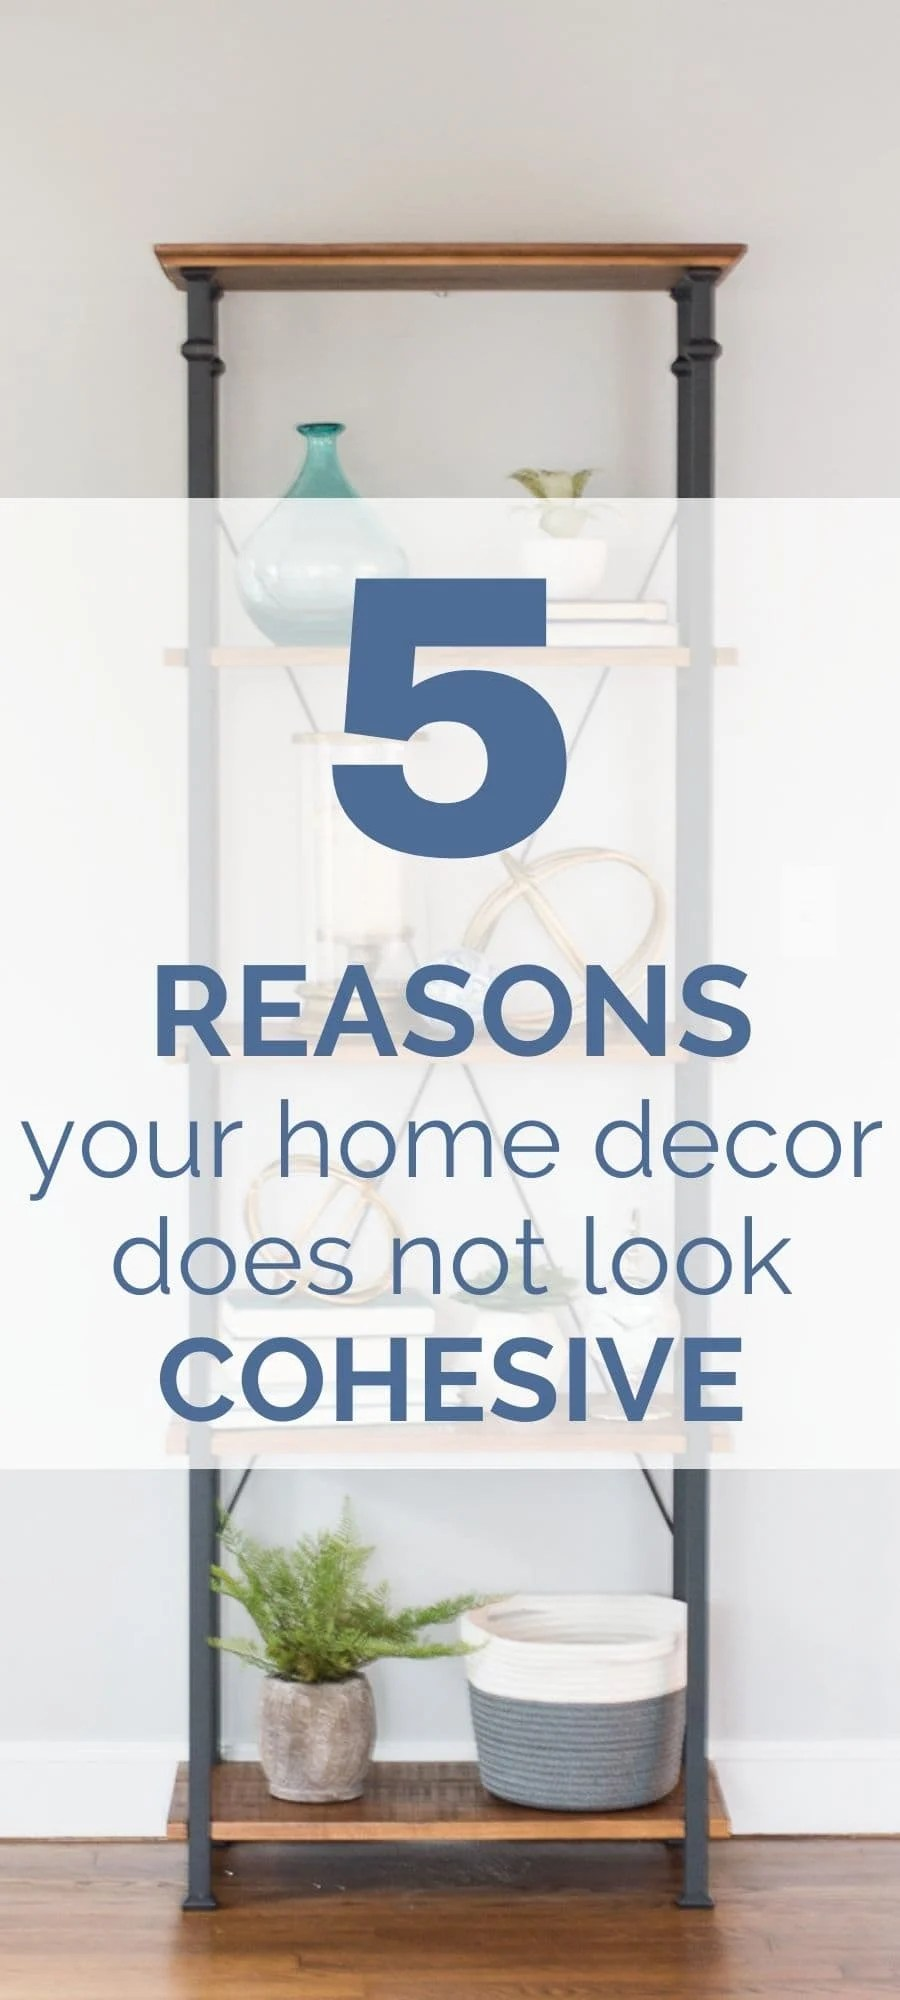 5 reasons your home decor does not look cohesive